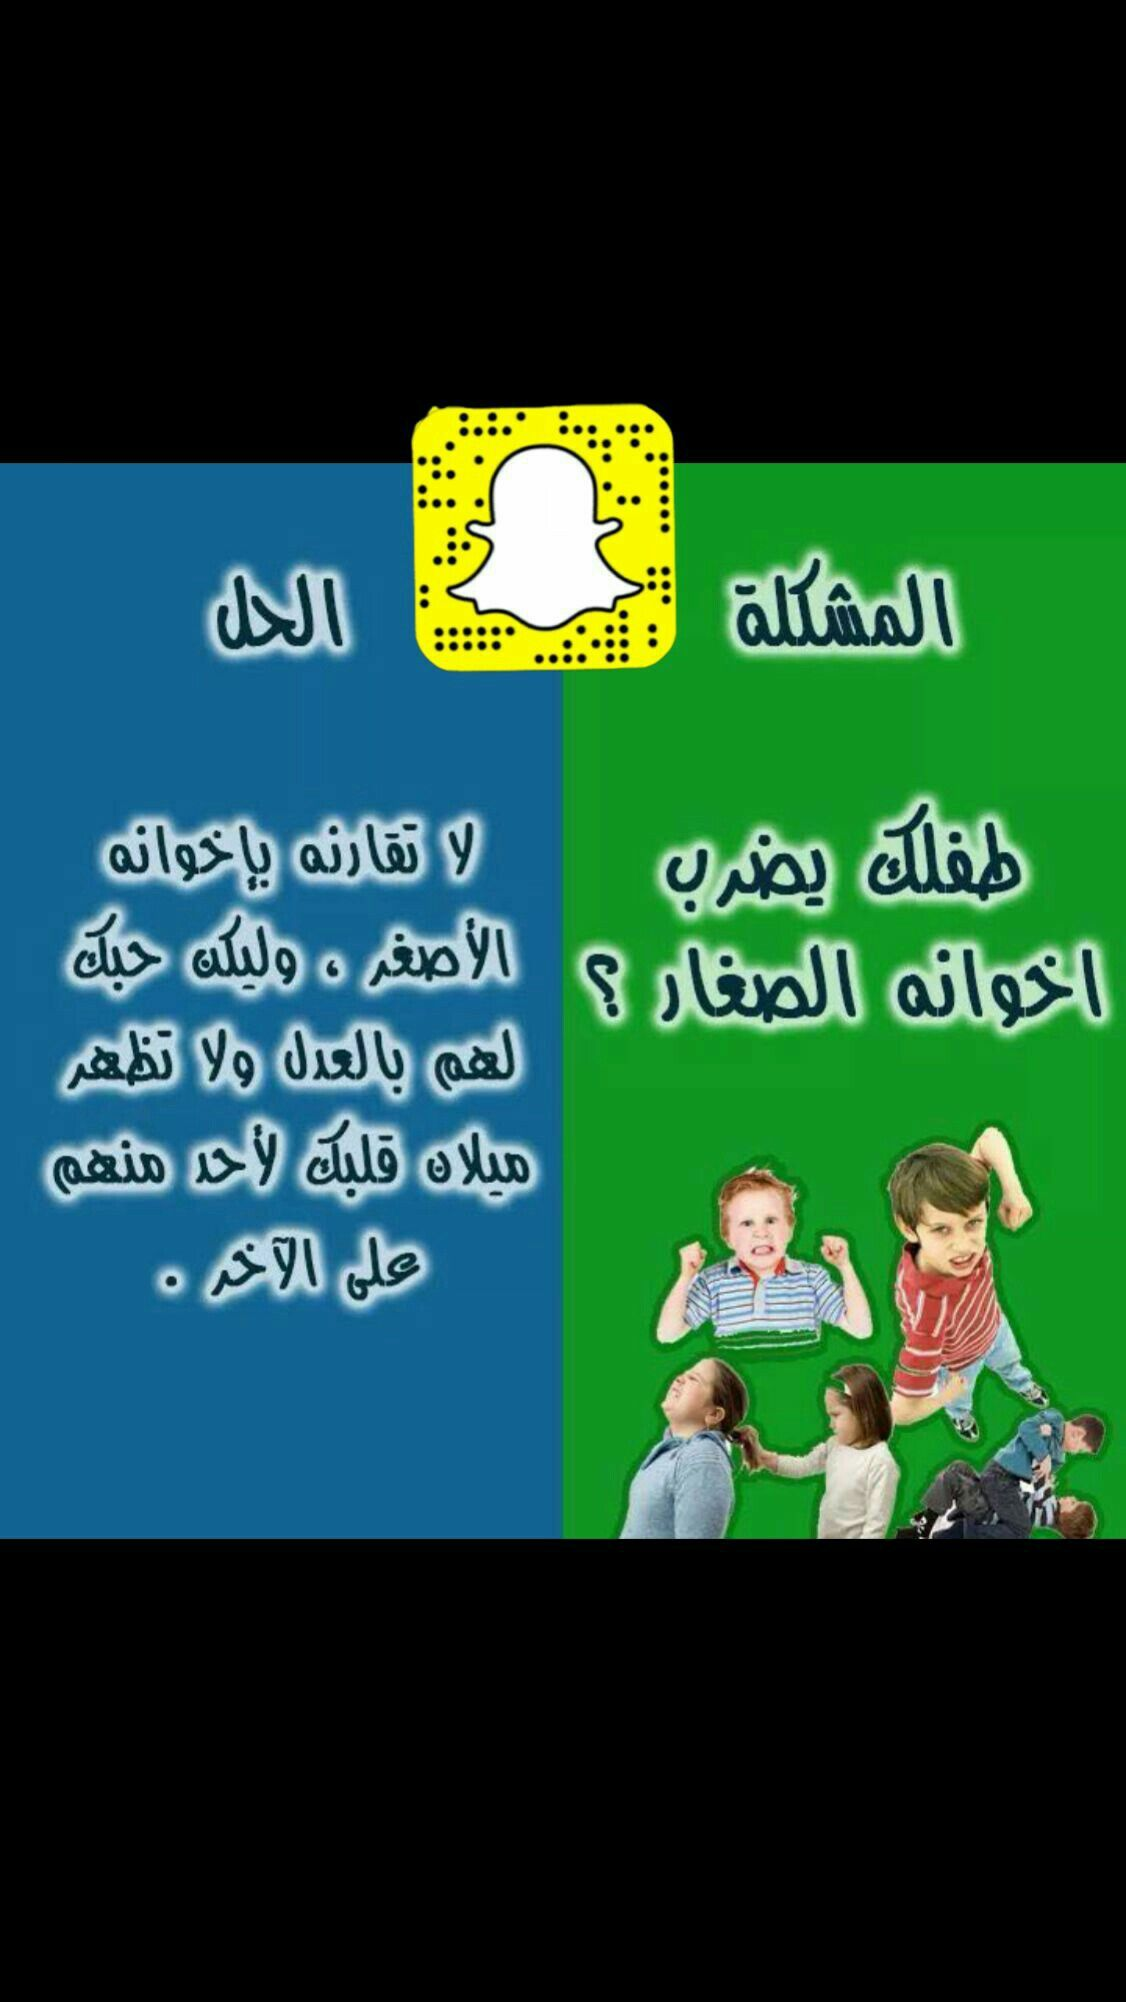 Pin By عابر عابر سبيل On الام والطفل Kids Education Baby Education Childrens Education